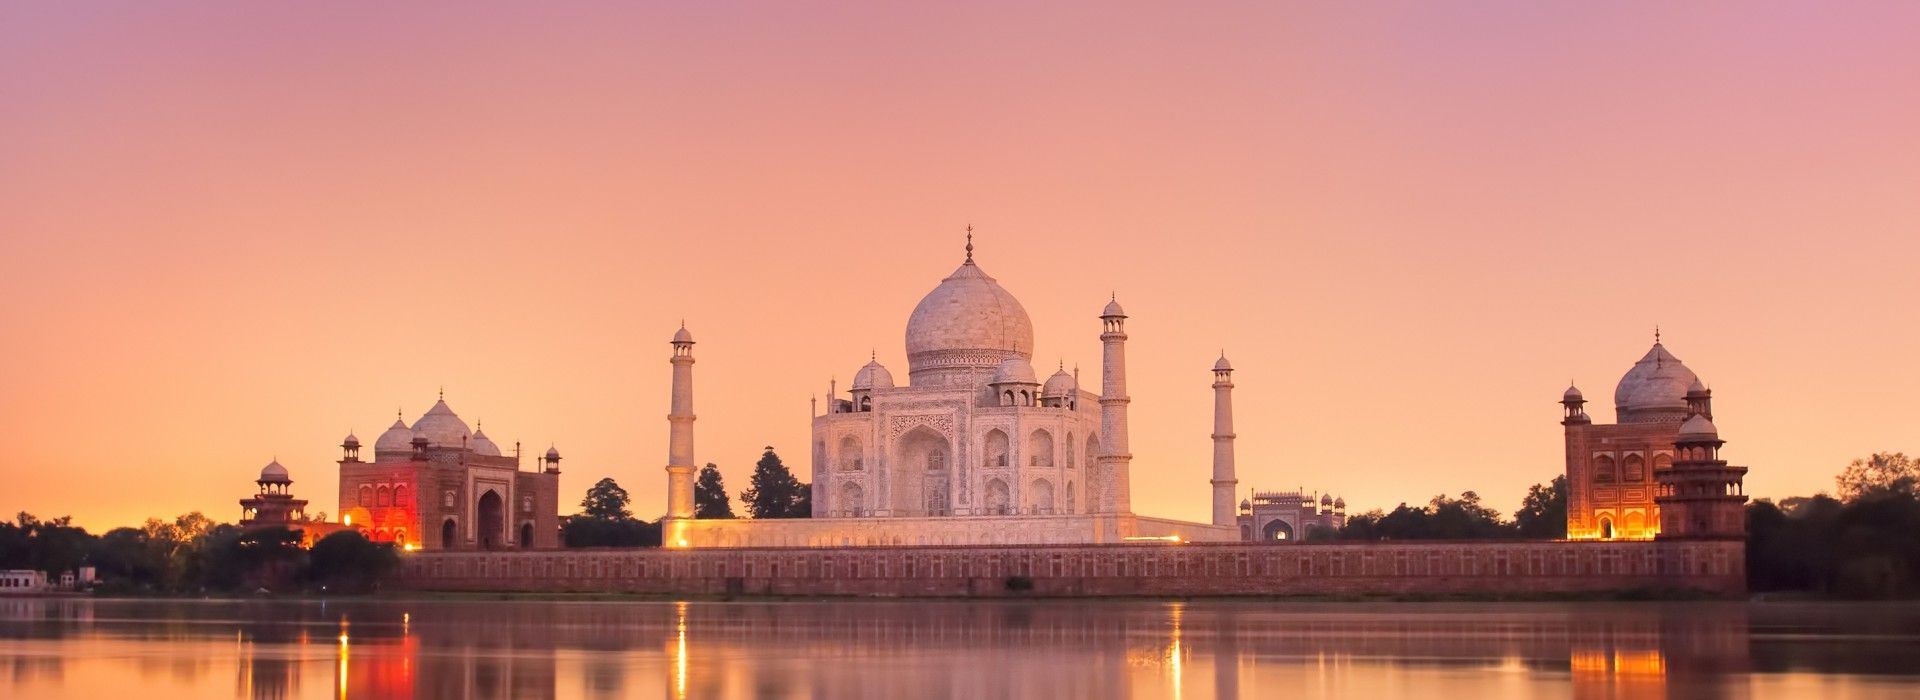 Food, wine, events and nightlife Tours in Delhi & Golden Triangle